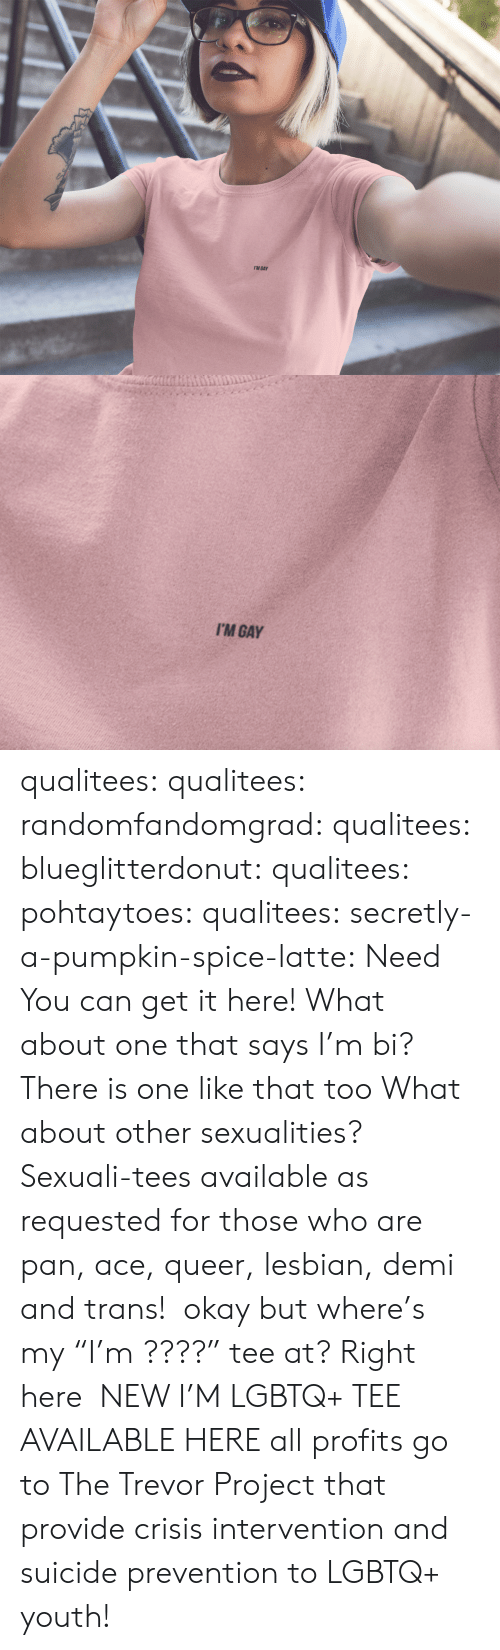 "Sexualities: I'M GAY   I'M GAY qualitees: qualitees:  randomfandomgrad:  qualitees:  blueglitterdonut:  qualitees:   pohtaytoes:  qualitees:   secretly-a-pumpkin-spice-latte: Need You can get it here!   What about one that says I'm bi?  There is one like that too   What about other sexualities?  Sexuali-tees available as requested for those who are pan, ace, queer, lesbian, demi and trans!   okay but where's my ""I'm ????"" tee at?  Right here   NEW I'M LGBTQ+ TEE AVAILABLE HERE all profits go to The Trevor Project that provide crisis intervention and suicide prevention to LGBTQ+ youth!"